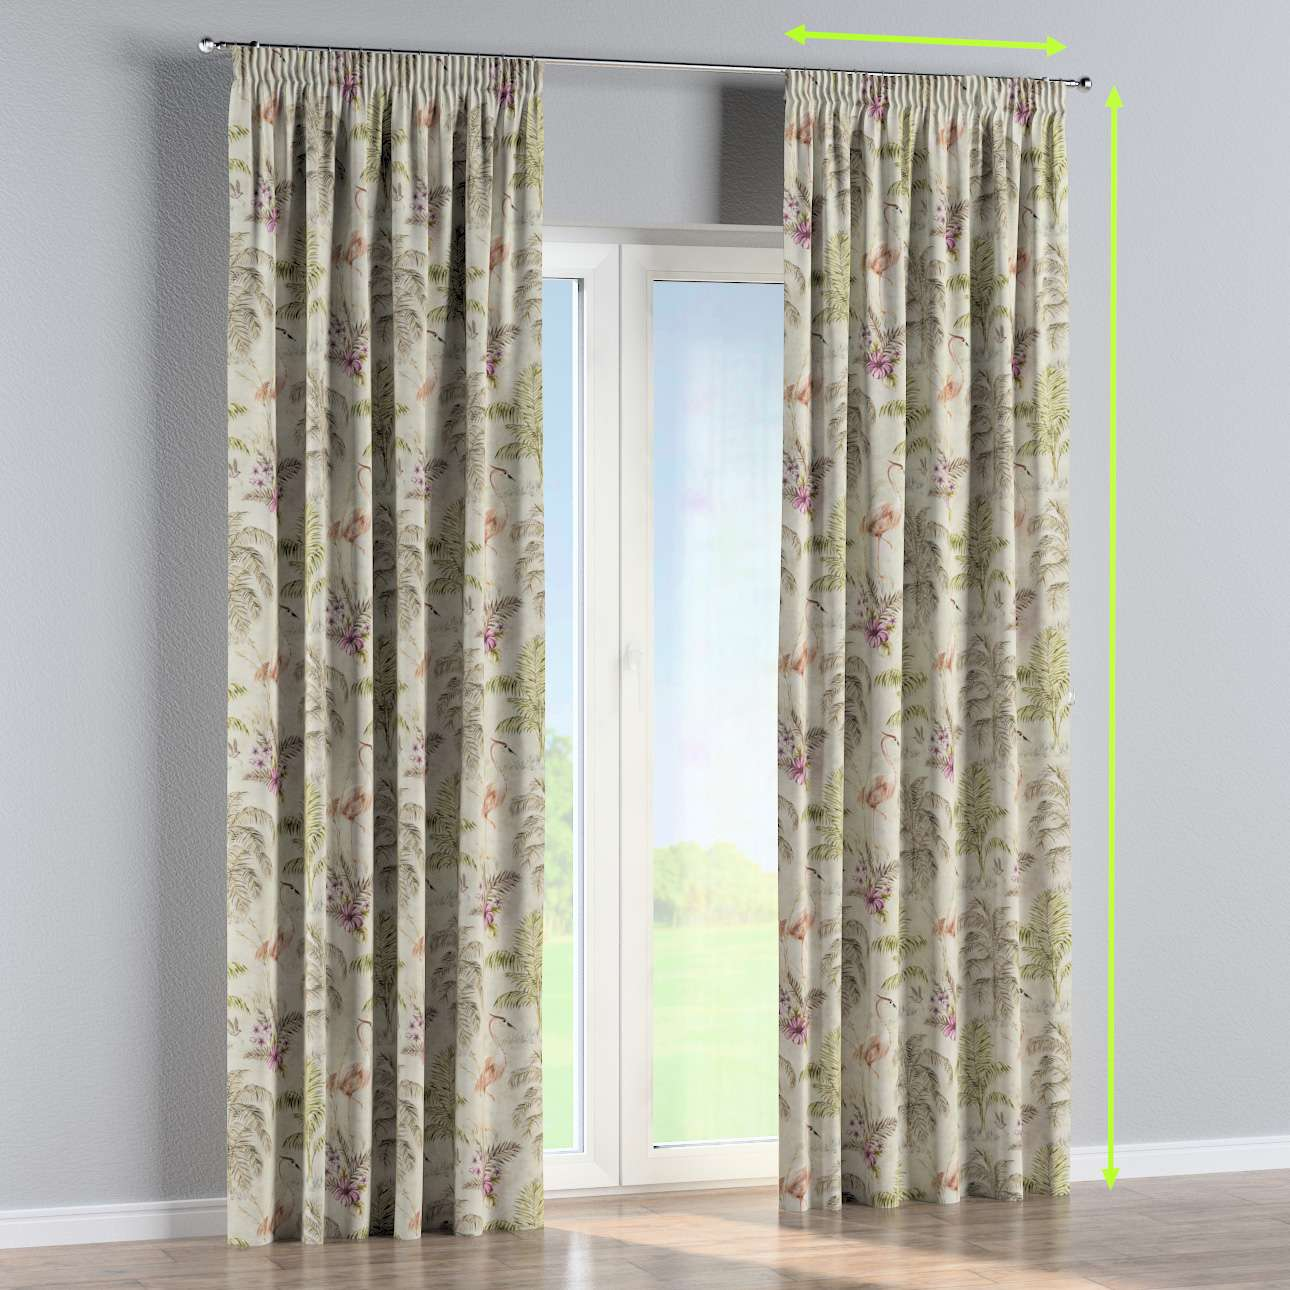 Pencil pleat curtain in collection Tropical Island, fabric: 142-61